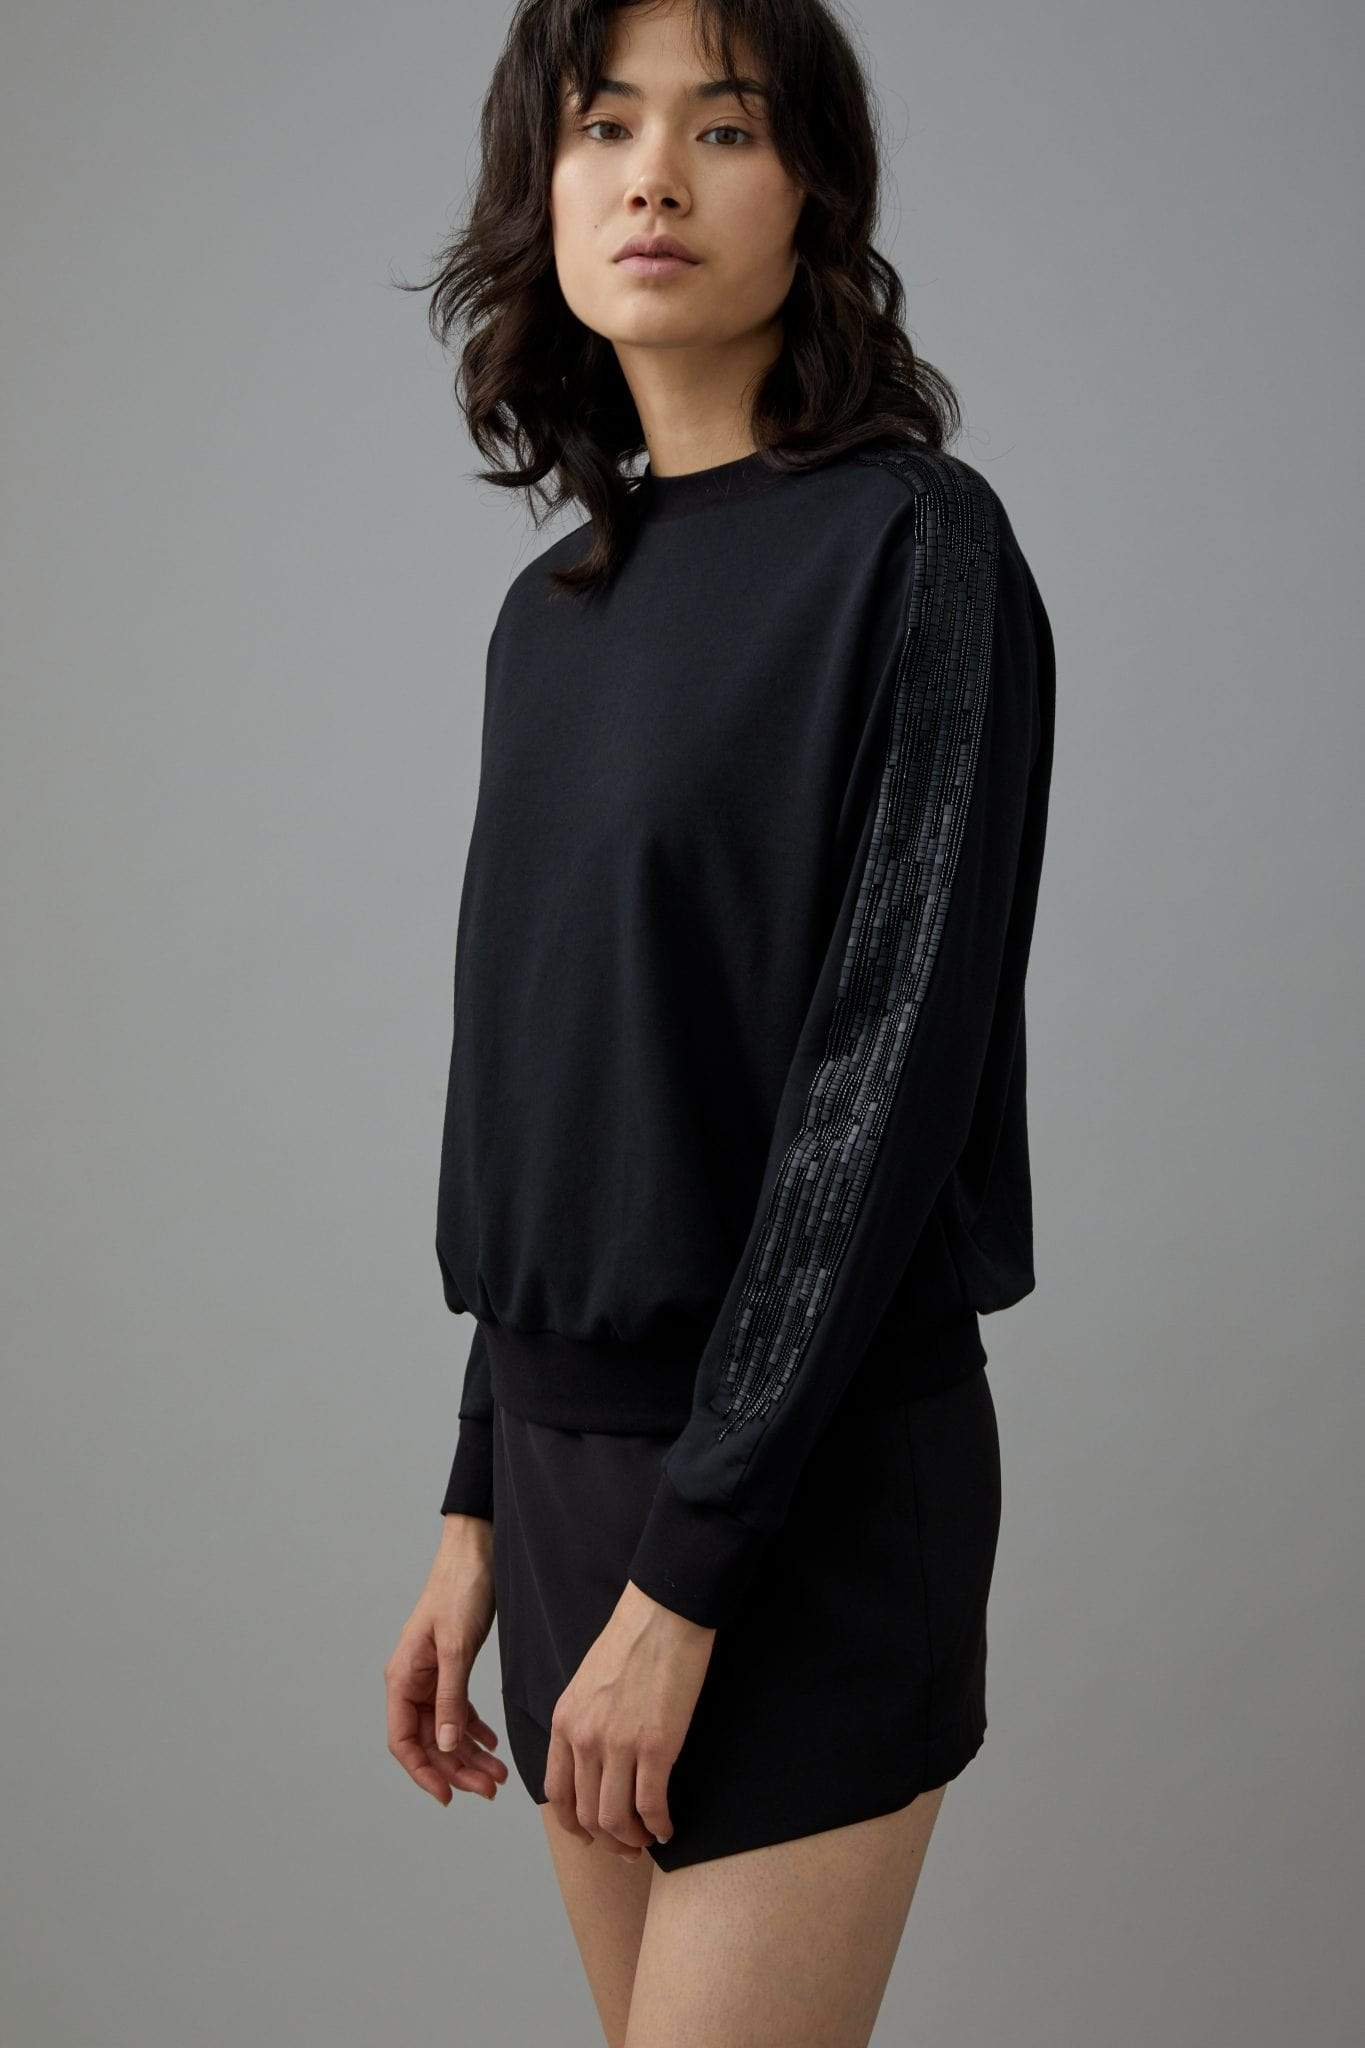 Manakaa Project sweater Sweater in Organic Cotton. sustainable fashion ethical fashion